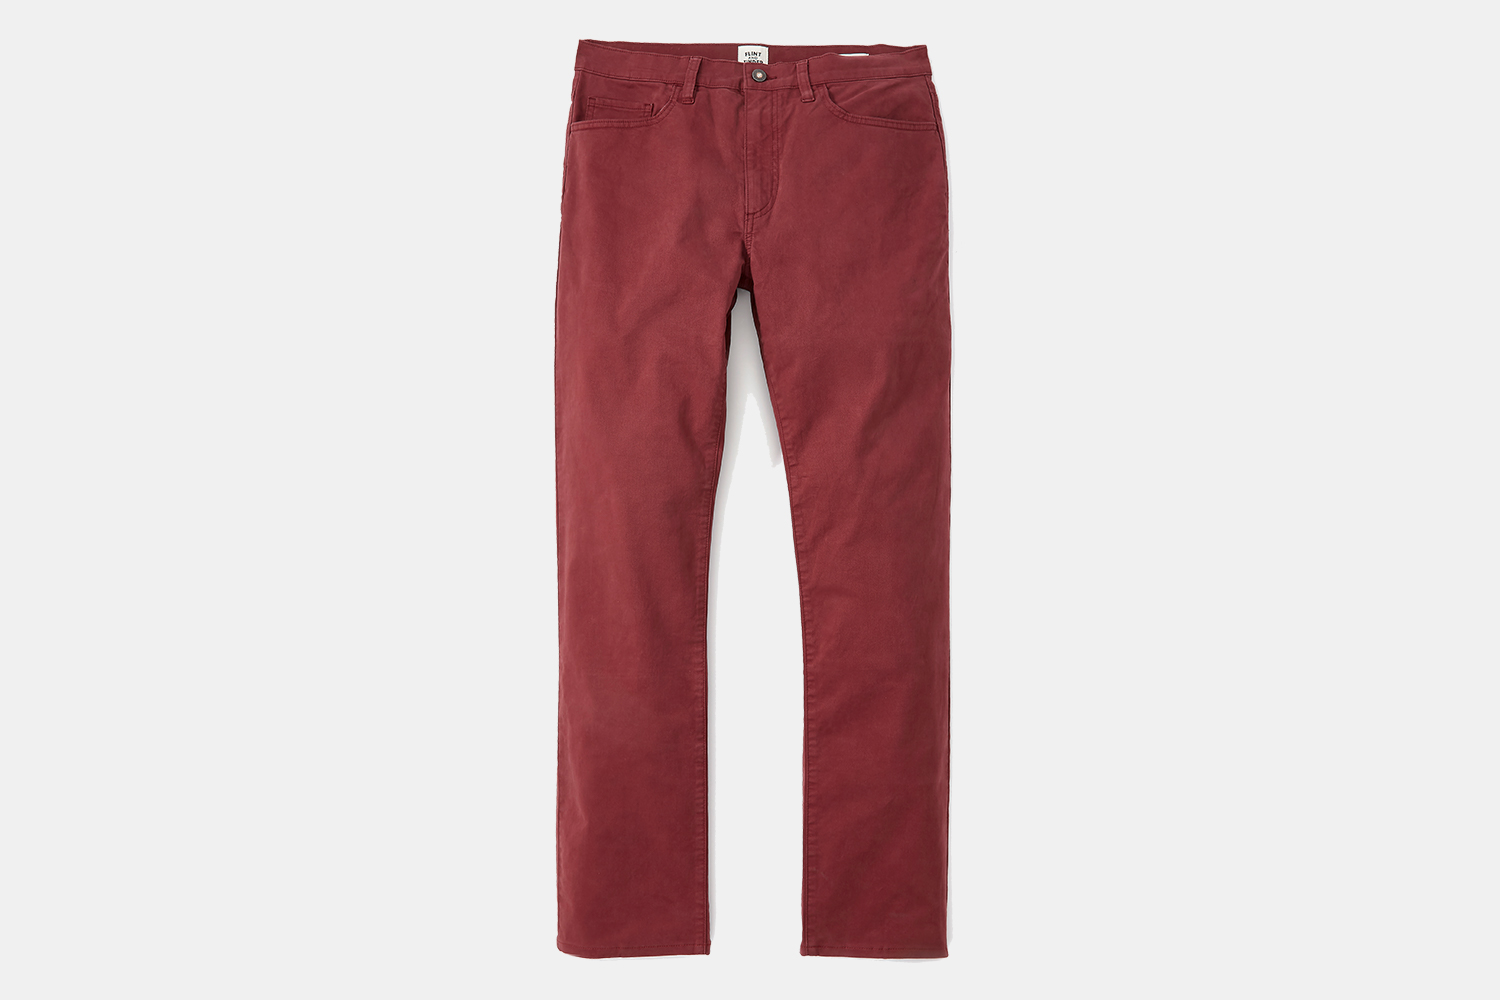 Flint and Tinder 365 Pant (Straight Fit)